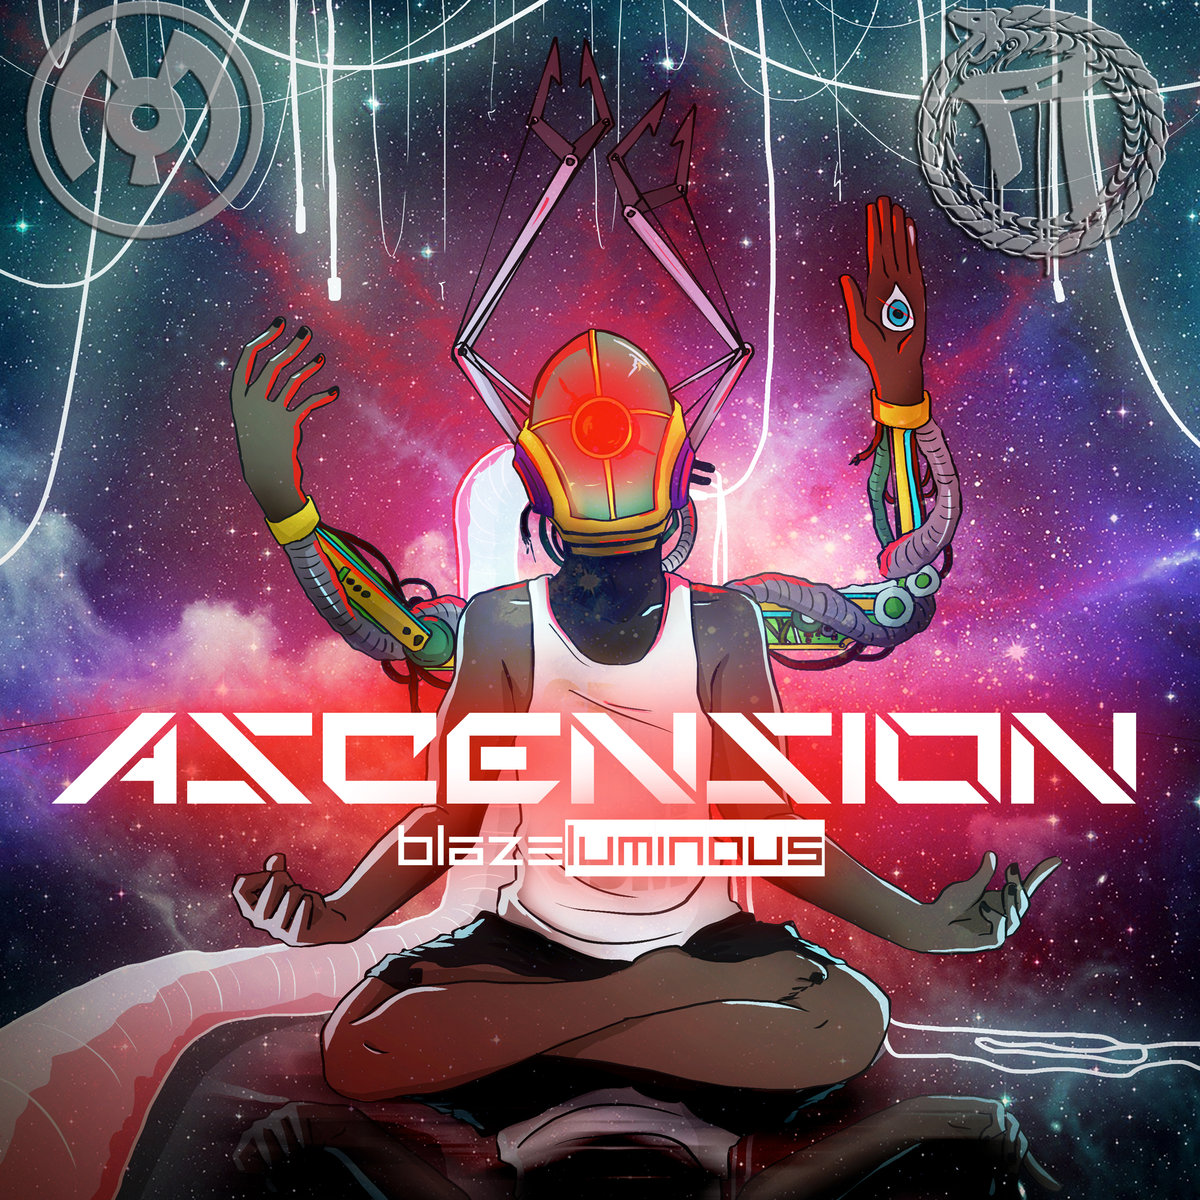 Blaze Luminious - Revel @ 'Ascension' album (electronic, dubstep)